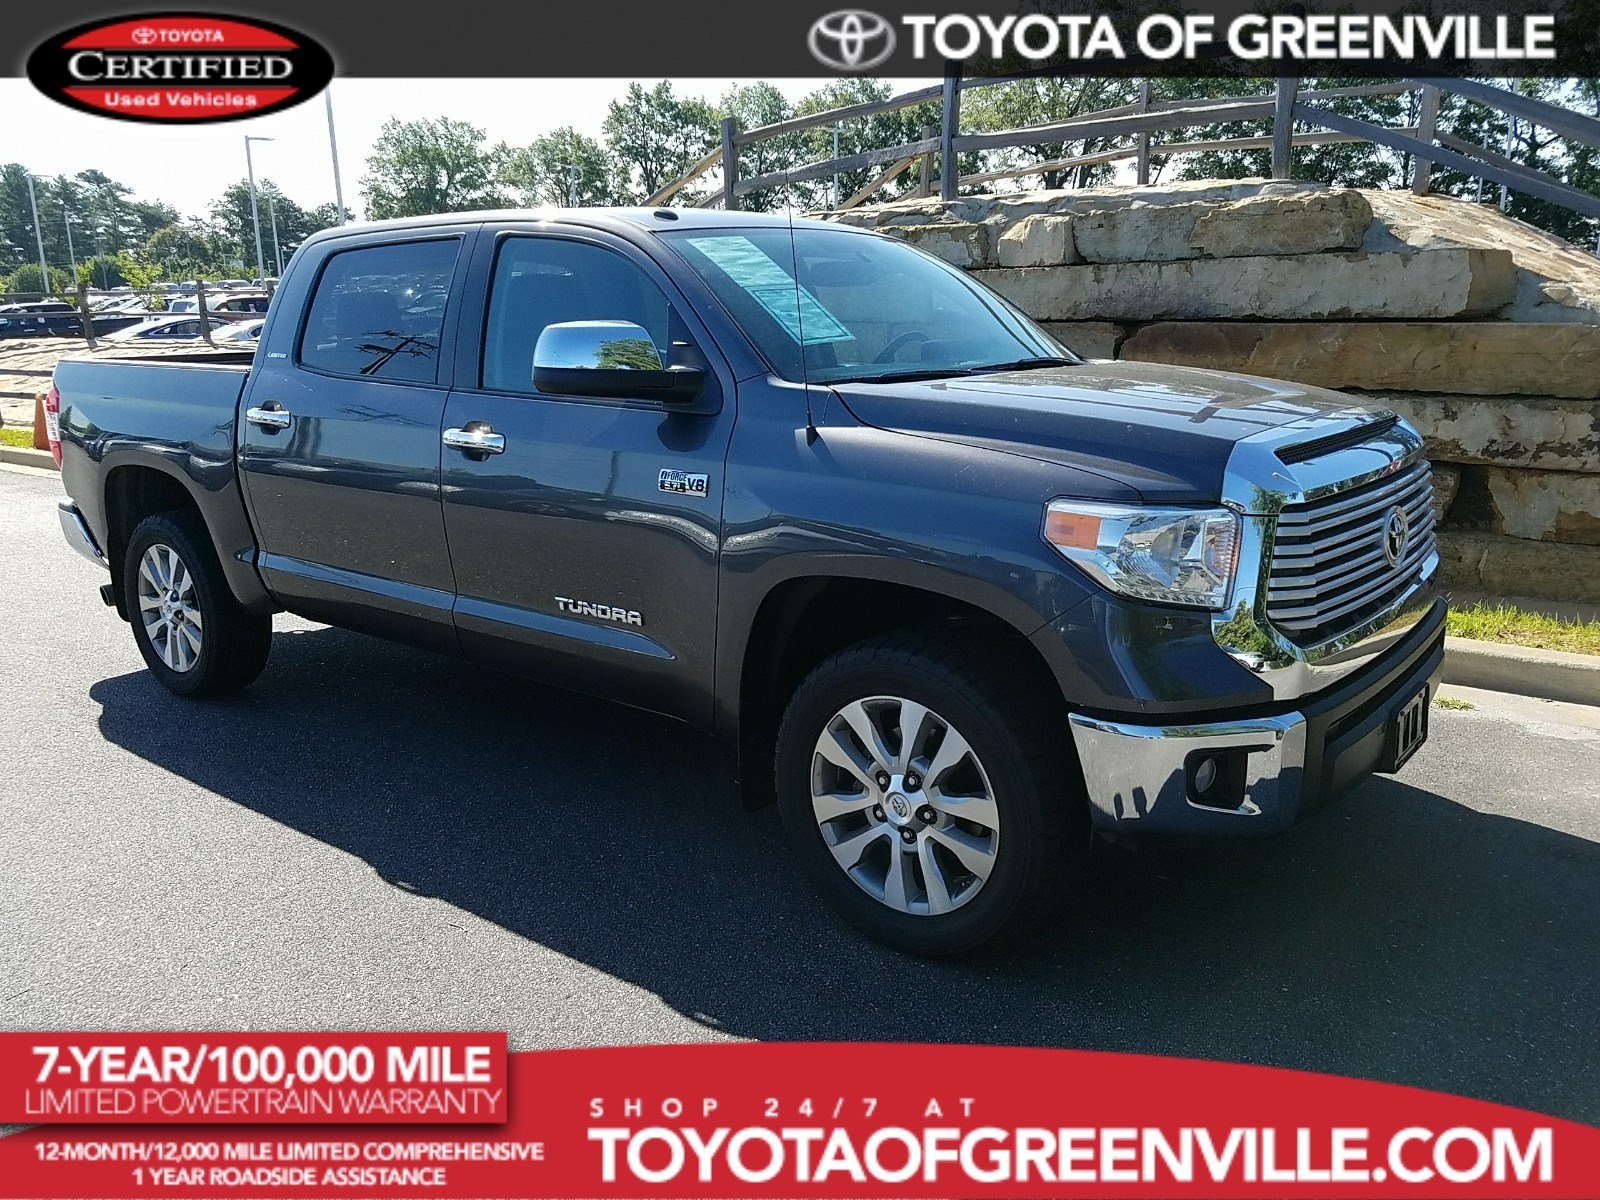 Photo Certified 2014 Toyota Tundra 4x4 Limited 5.7L V8 FFV 26 Truck Crew Max in Greenville SC